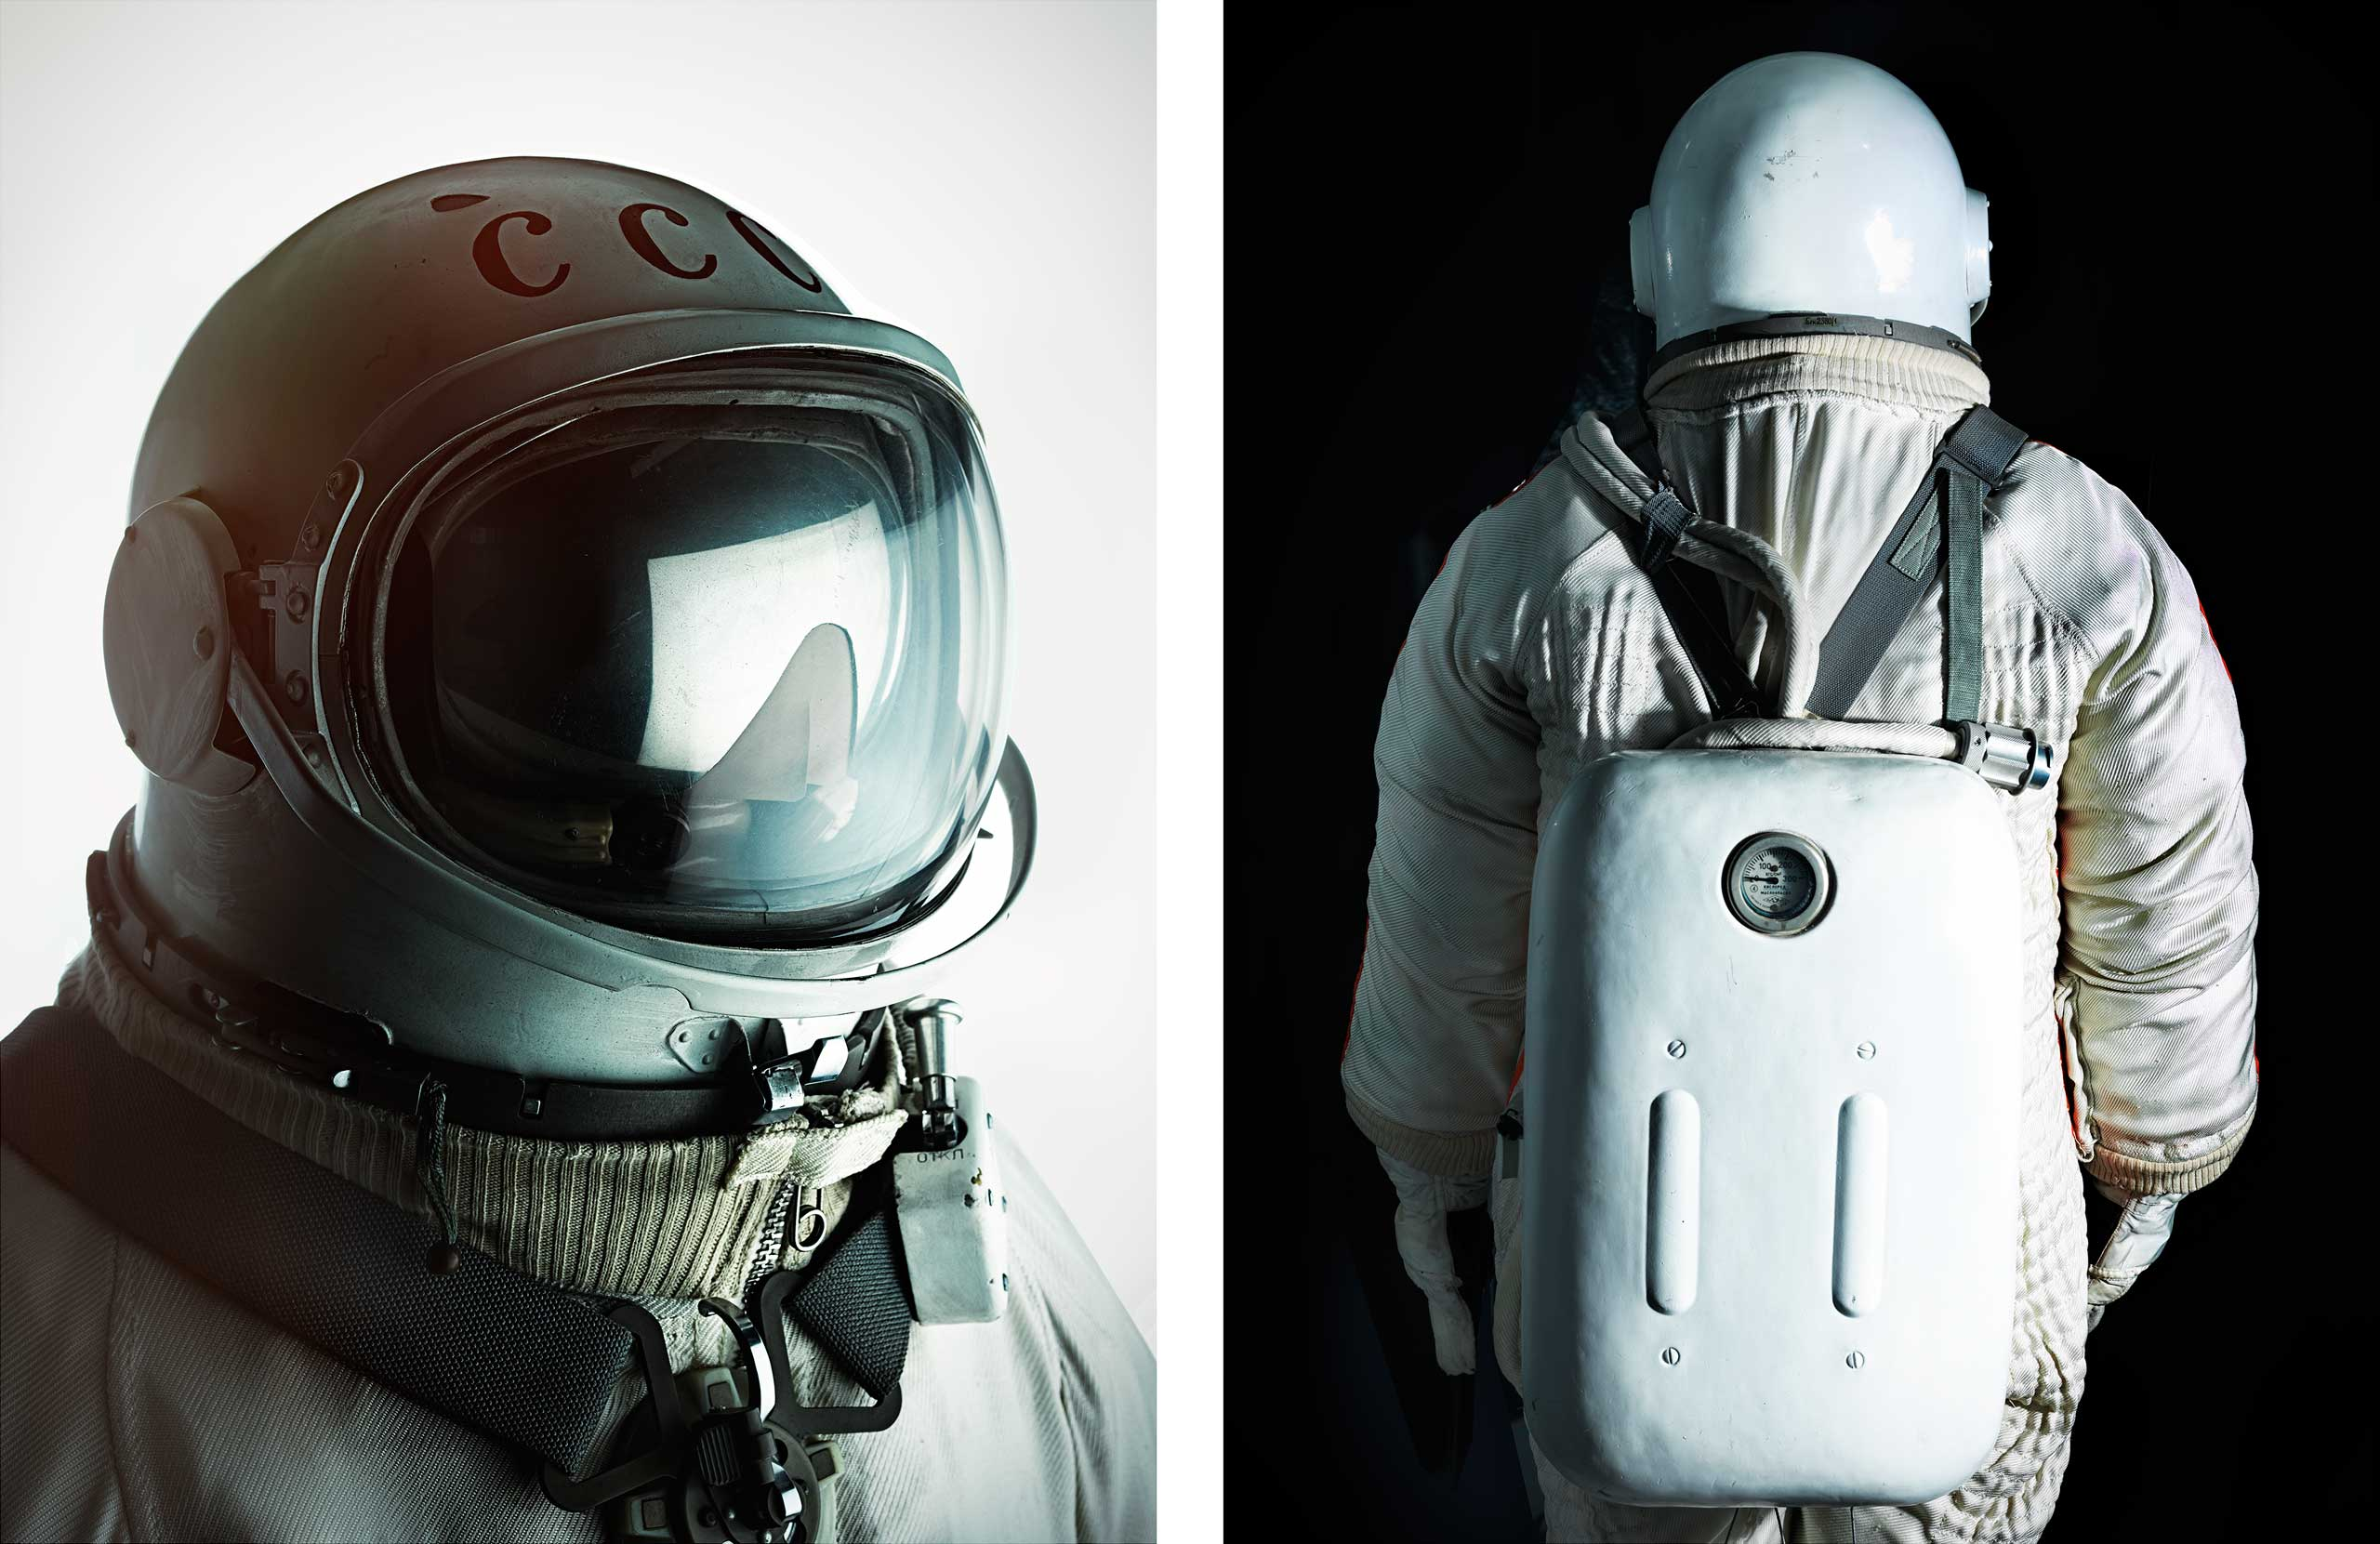 The spacesuit worn by Alexei Leonov on the first-ever spacewalk on March 18, 1965. The suit was photographed at the Memorial Museum of Cosmonautics in Moscow  on March 16, 2015.